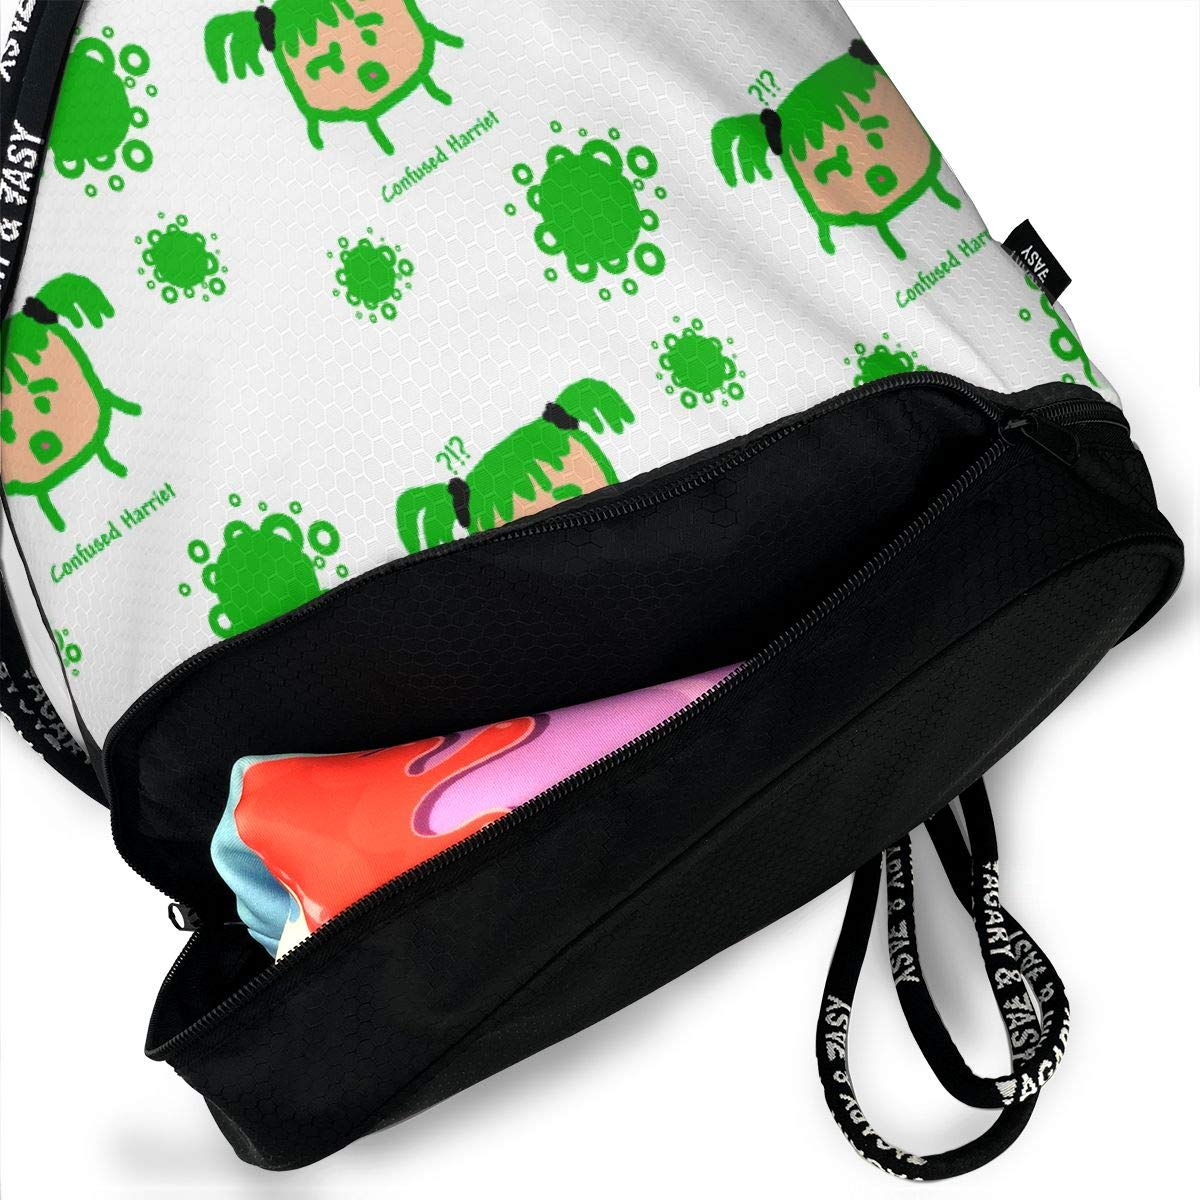 Confused Bubbles Drawstring Backpack Sports Athletic Gym Cinch Sack String Storage Bags for Hiking Travel Beach